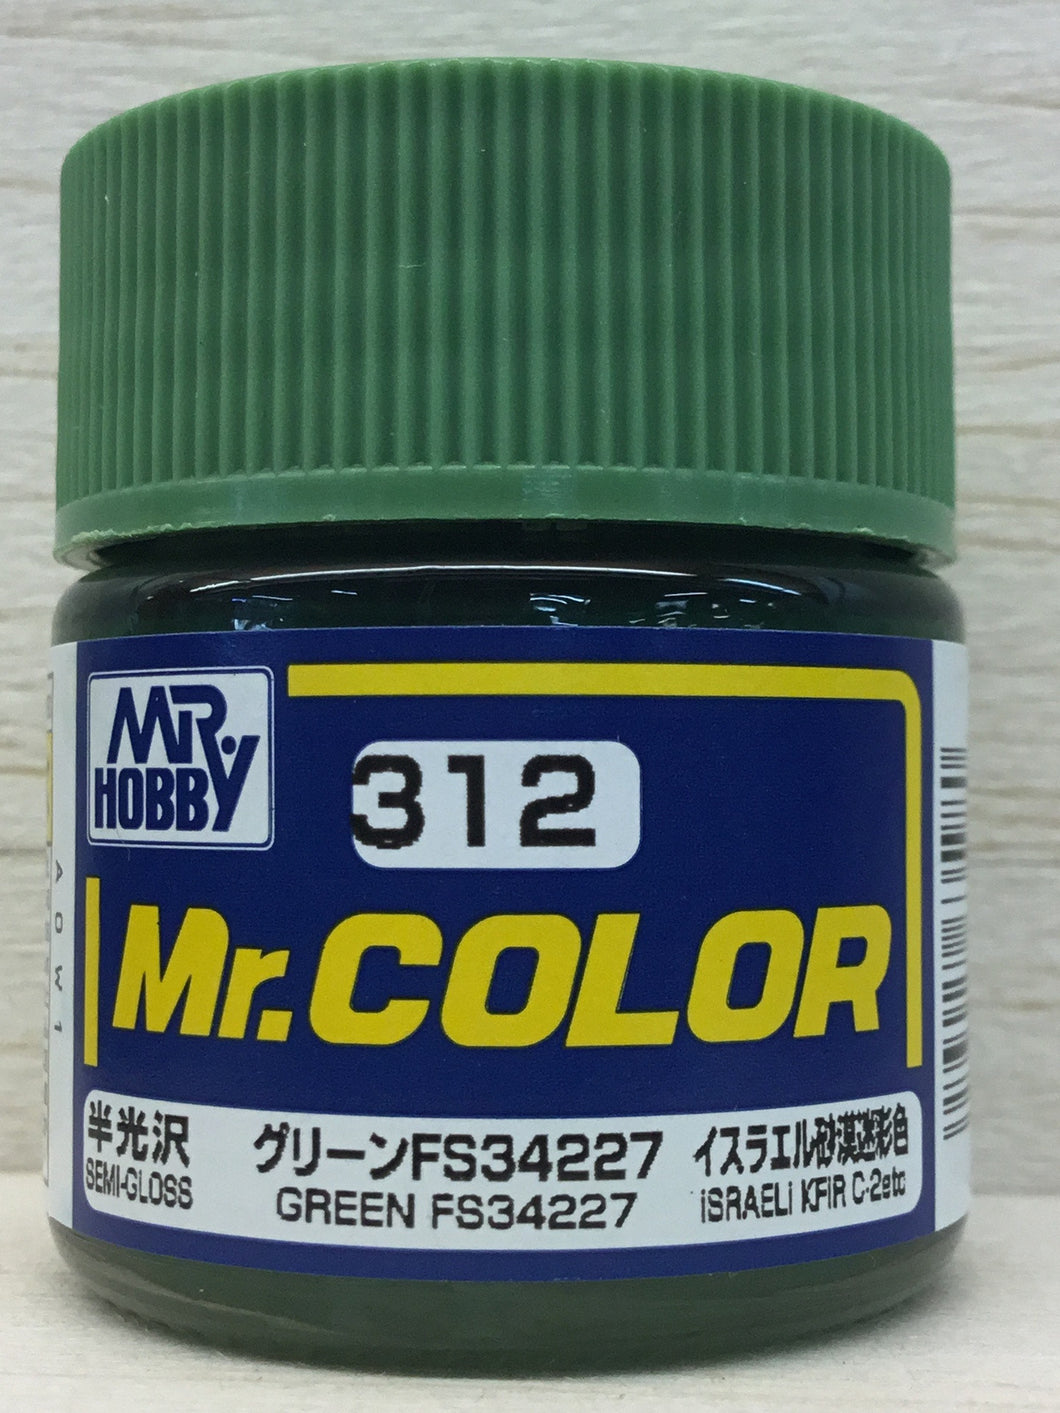 GUNZE MR COLOR C312 SEMI GLOSS GREEN FS34227